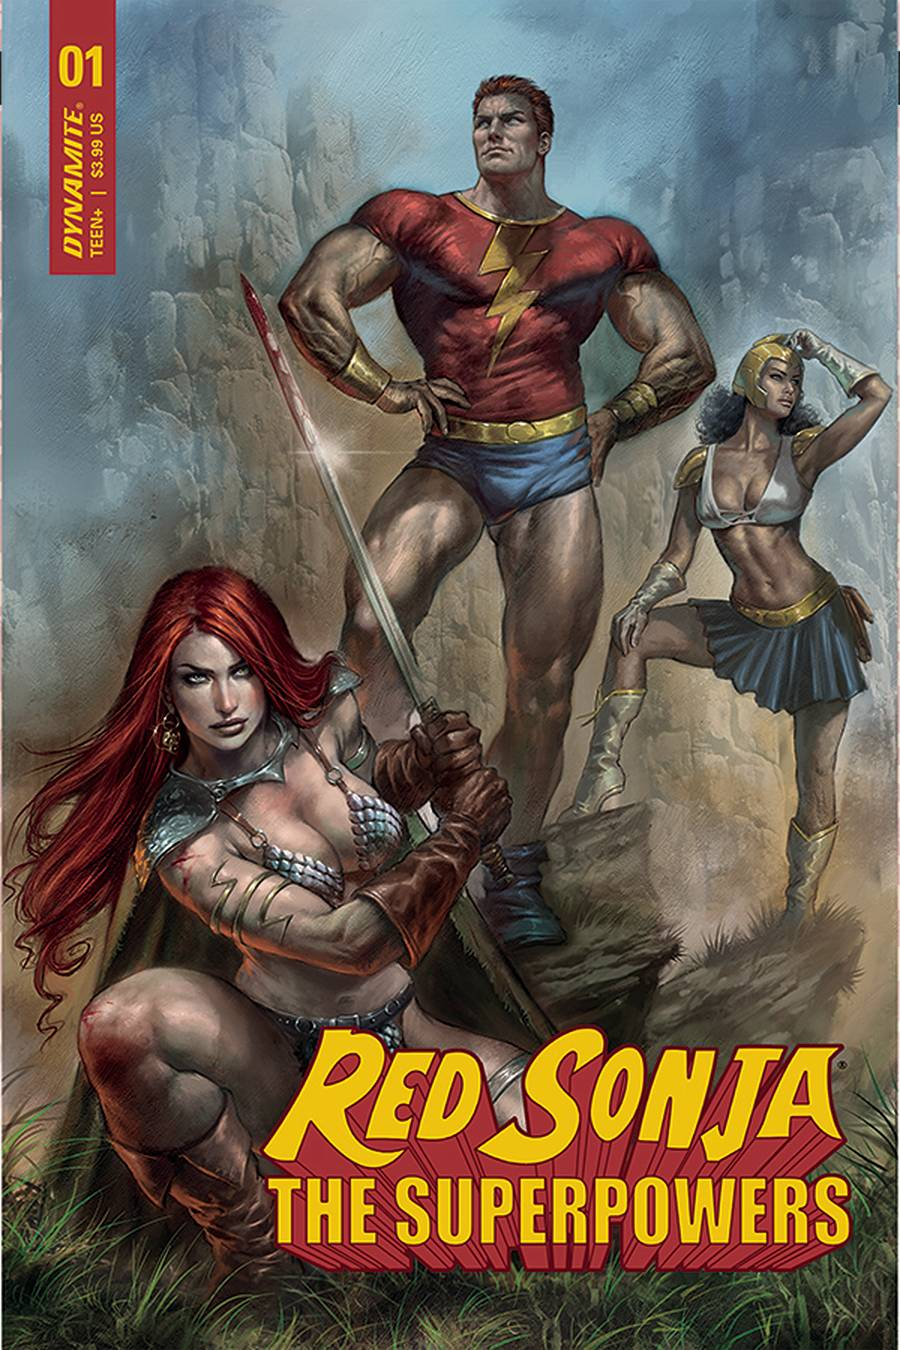 RED SONJA THE SUPERPOWERS #1 CVR A PARRILLO